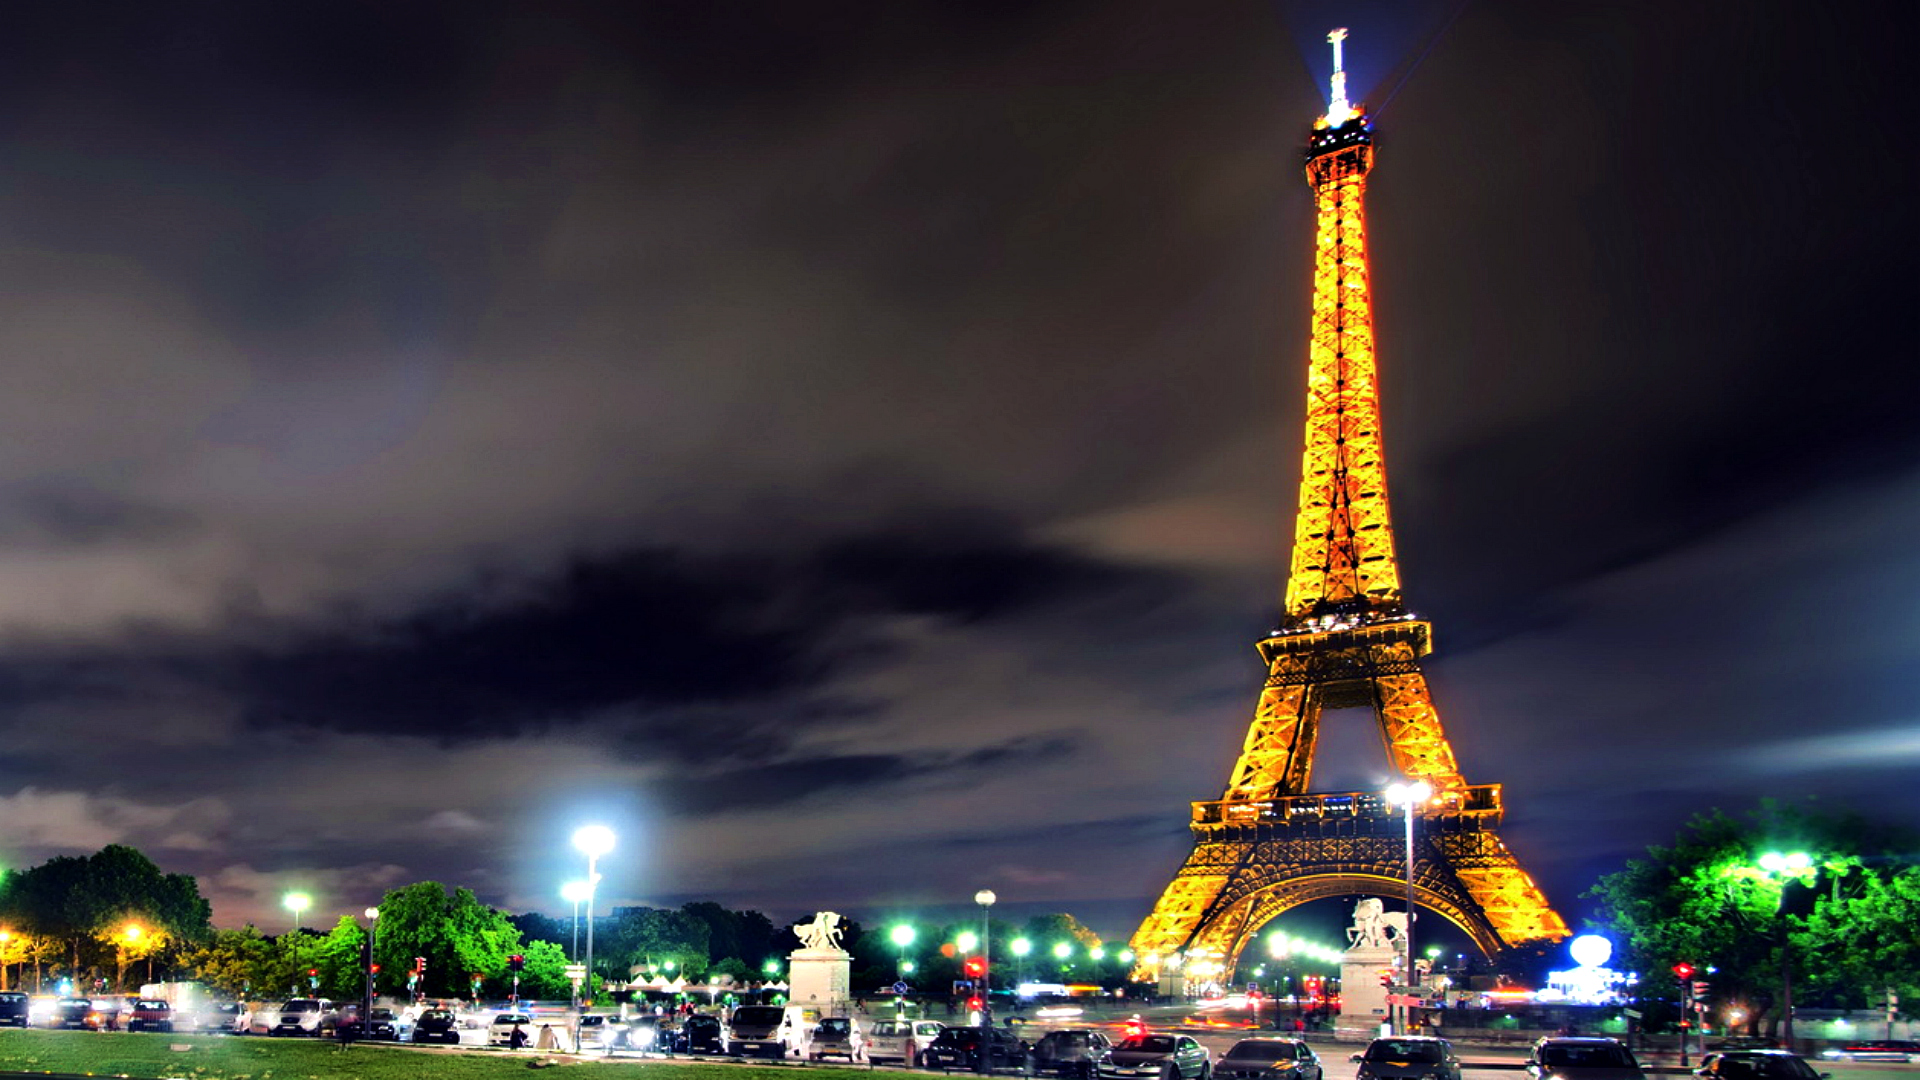 Hd Eiffel Tower Night Wallpaper 1920x1080 768x432